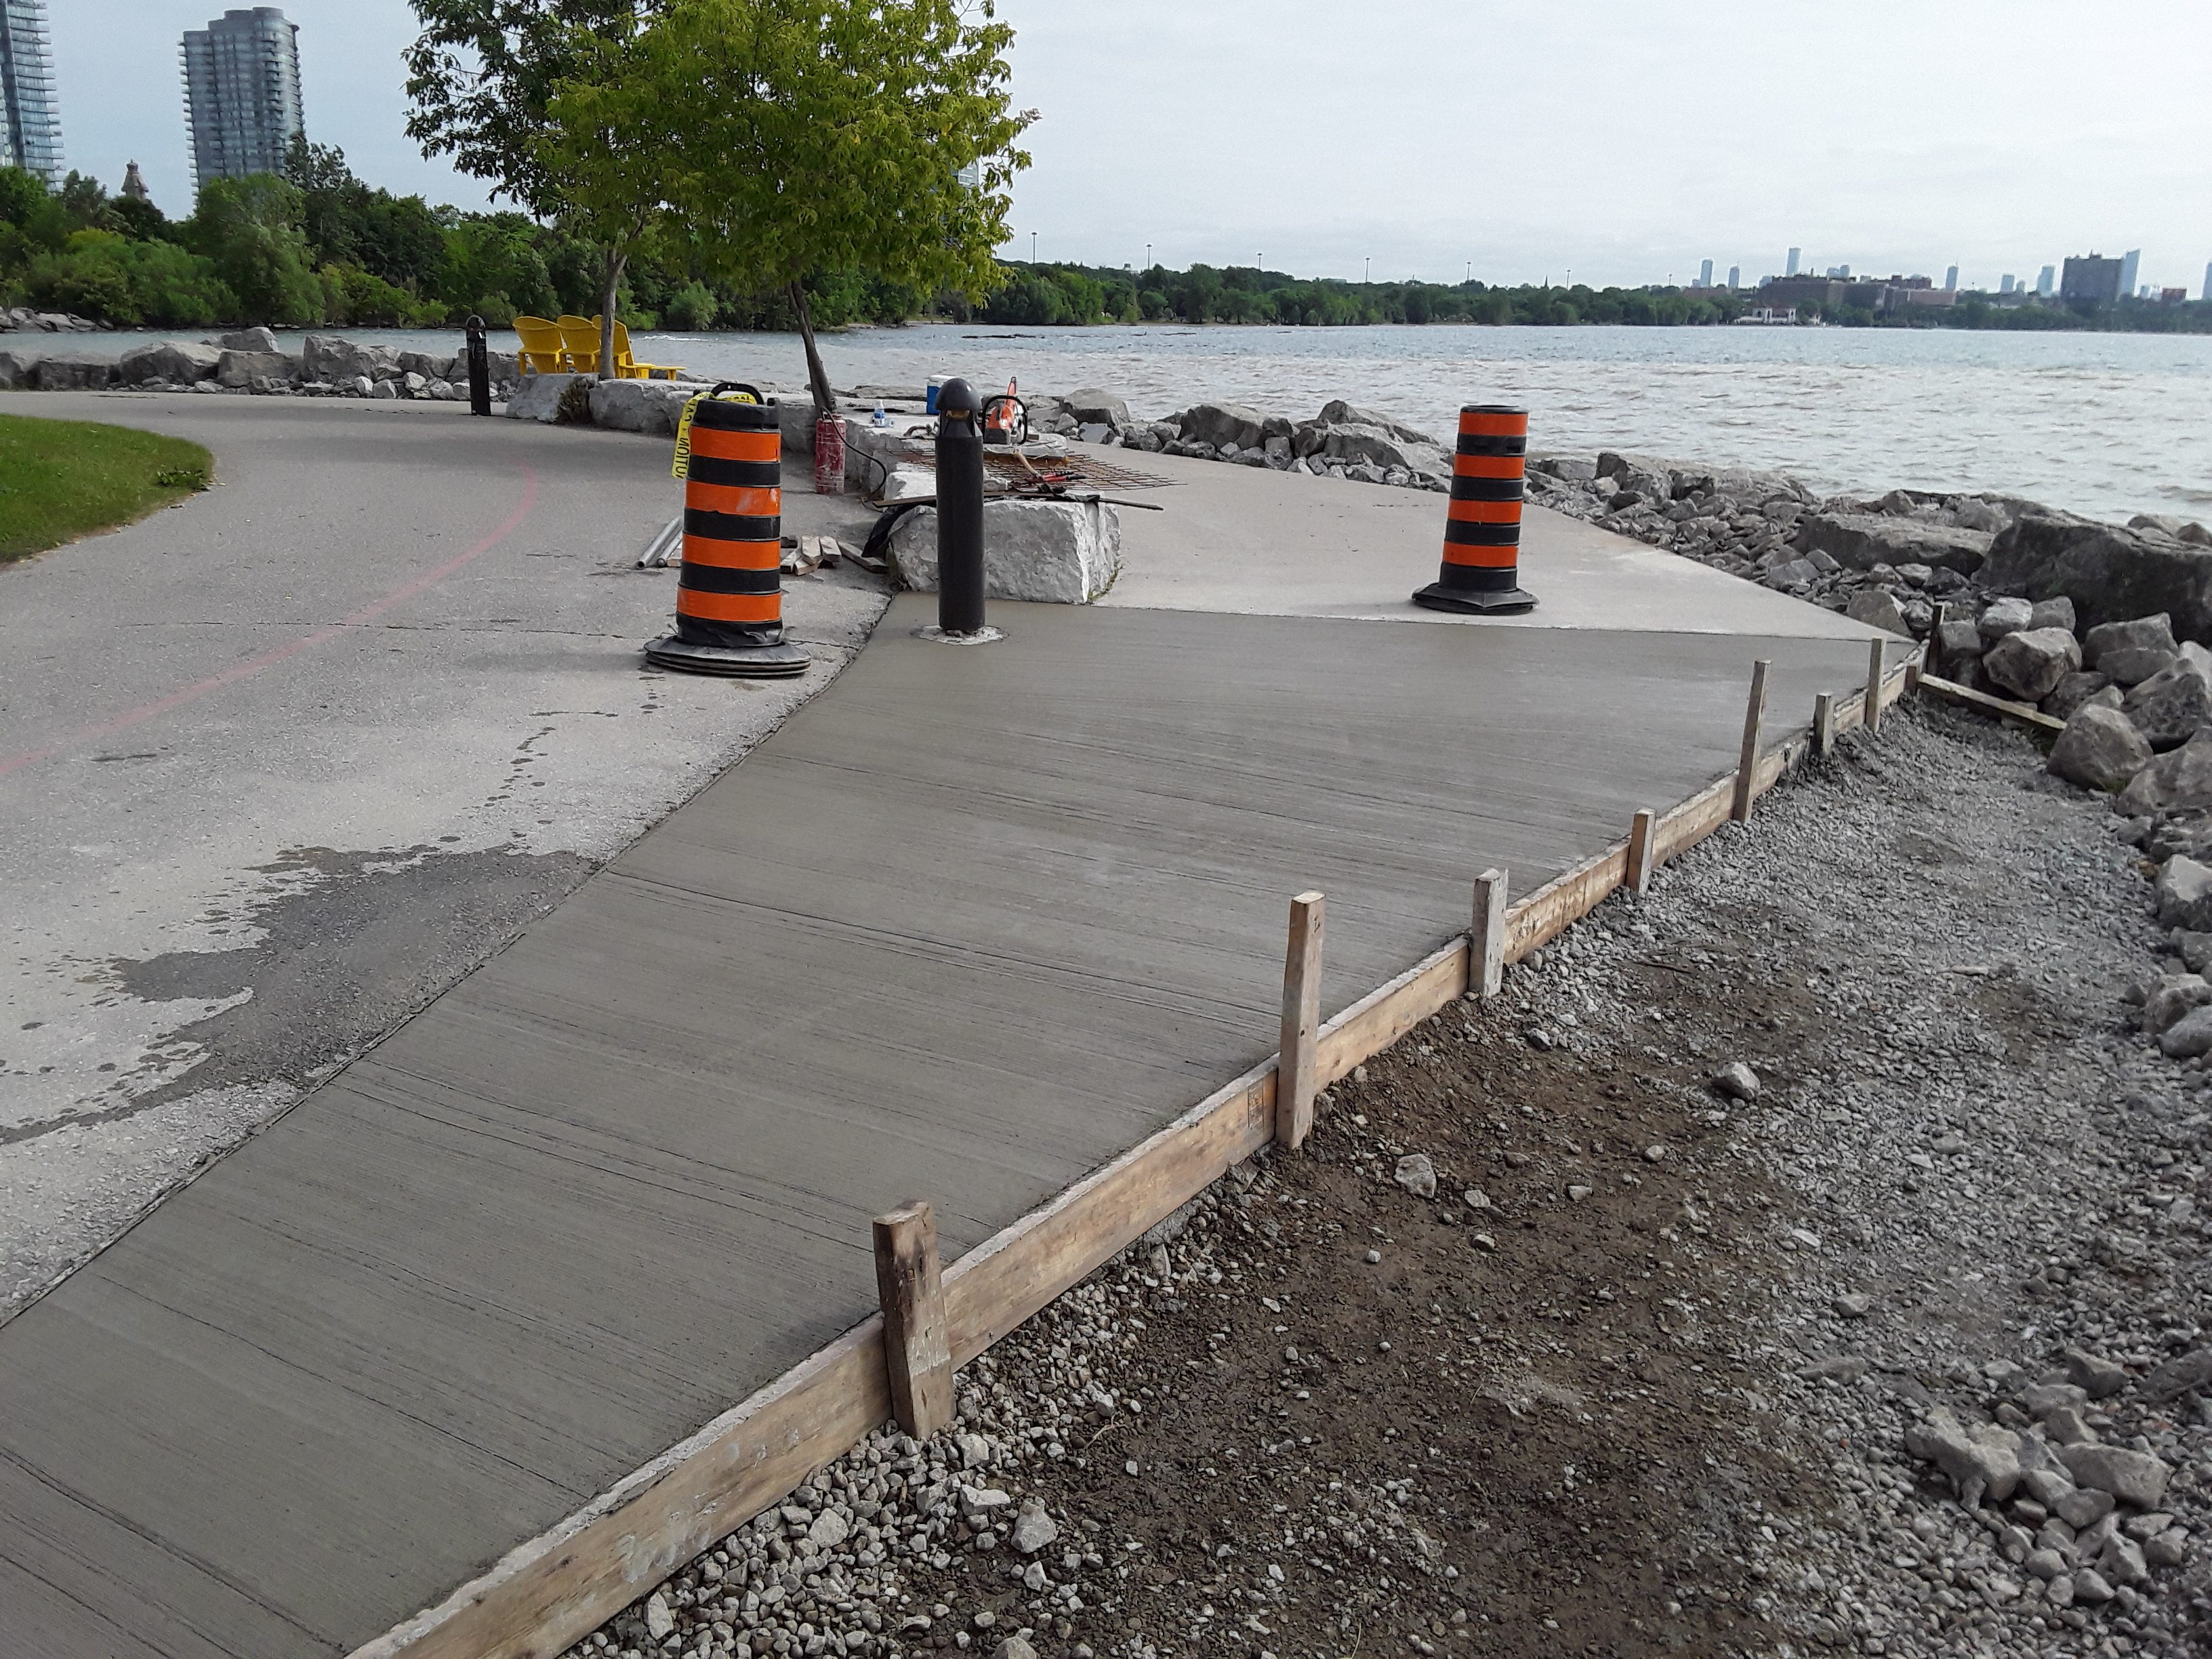 Newly poured concrete slab at the Sheldon Lookout portion of Humber Bay Shores Trail. Source: TRCA, 2019.